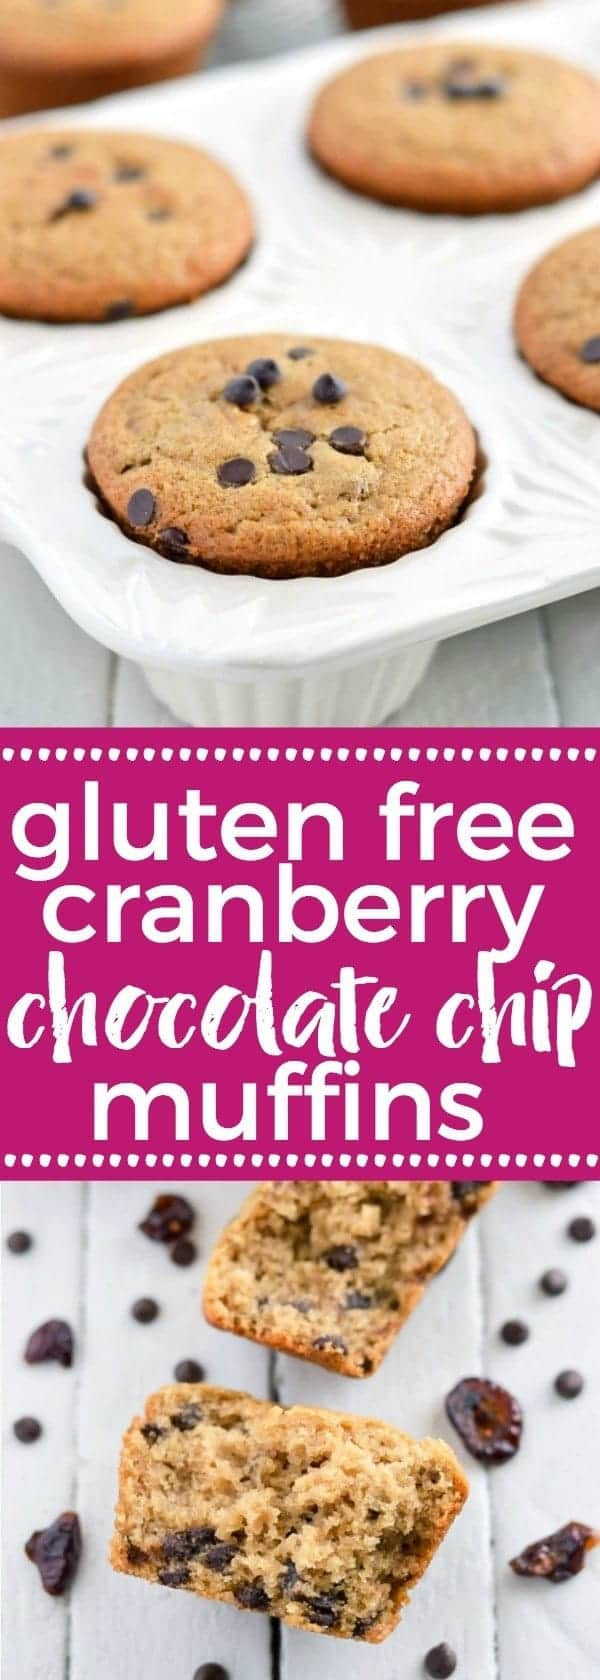 Gluten Free Cranberry Chocolate Chip Muffins - nut free and vegan (top 8 free). Easy breakfast recipe from @whattheforkblog | whattheforkfoodblog.com | gluten free breakfast recipes | gluten free muffins | vegan recipes | allergy-friendly | Christmas brunch ideas | easy breakfast ideas | gluten free baking | sponsored | muffin mix hack